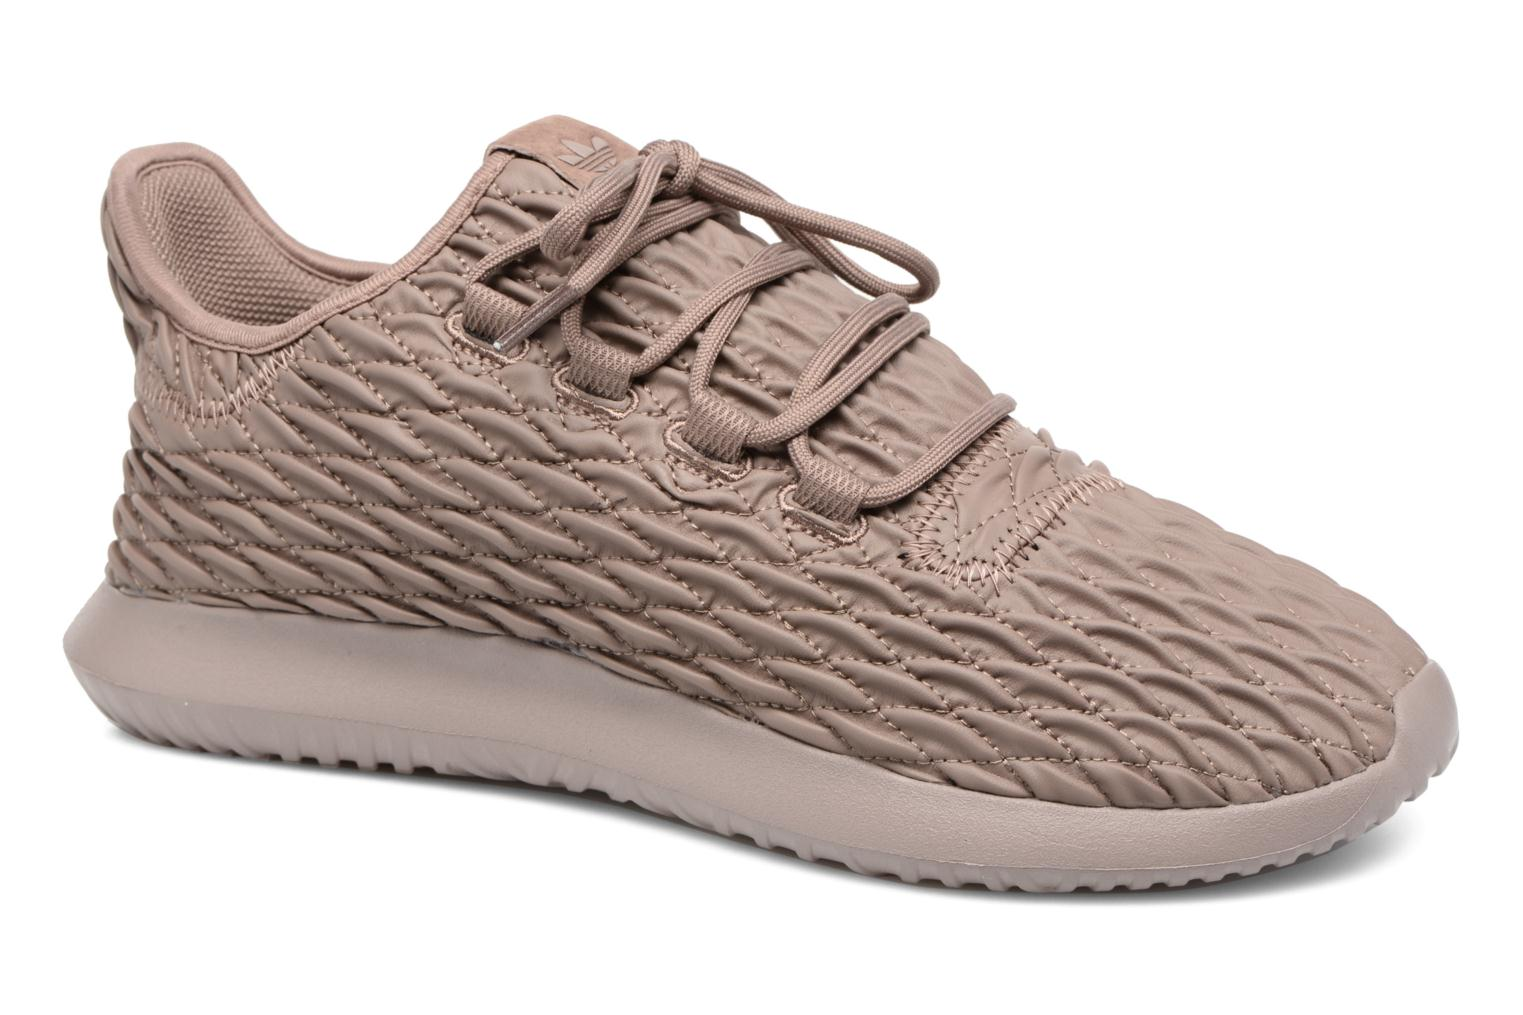 Baskets Adidas Originals Tubular Shadow Marron vue détail/paire